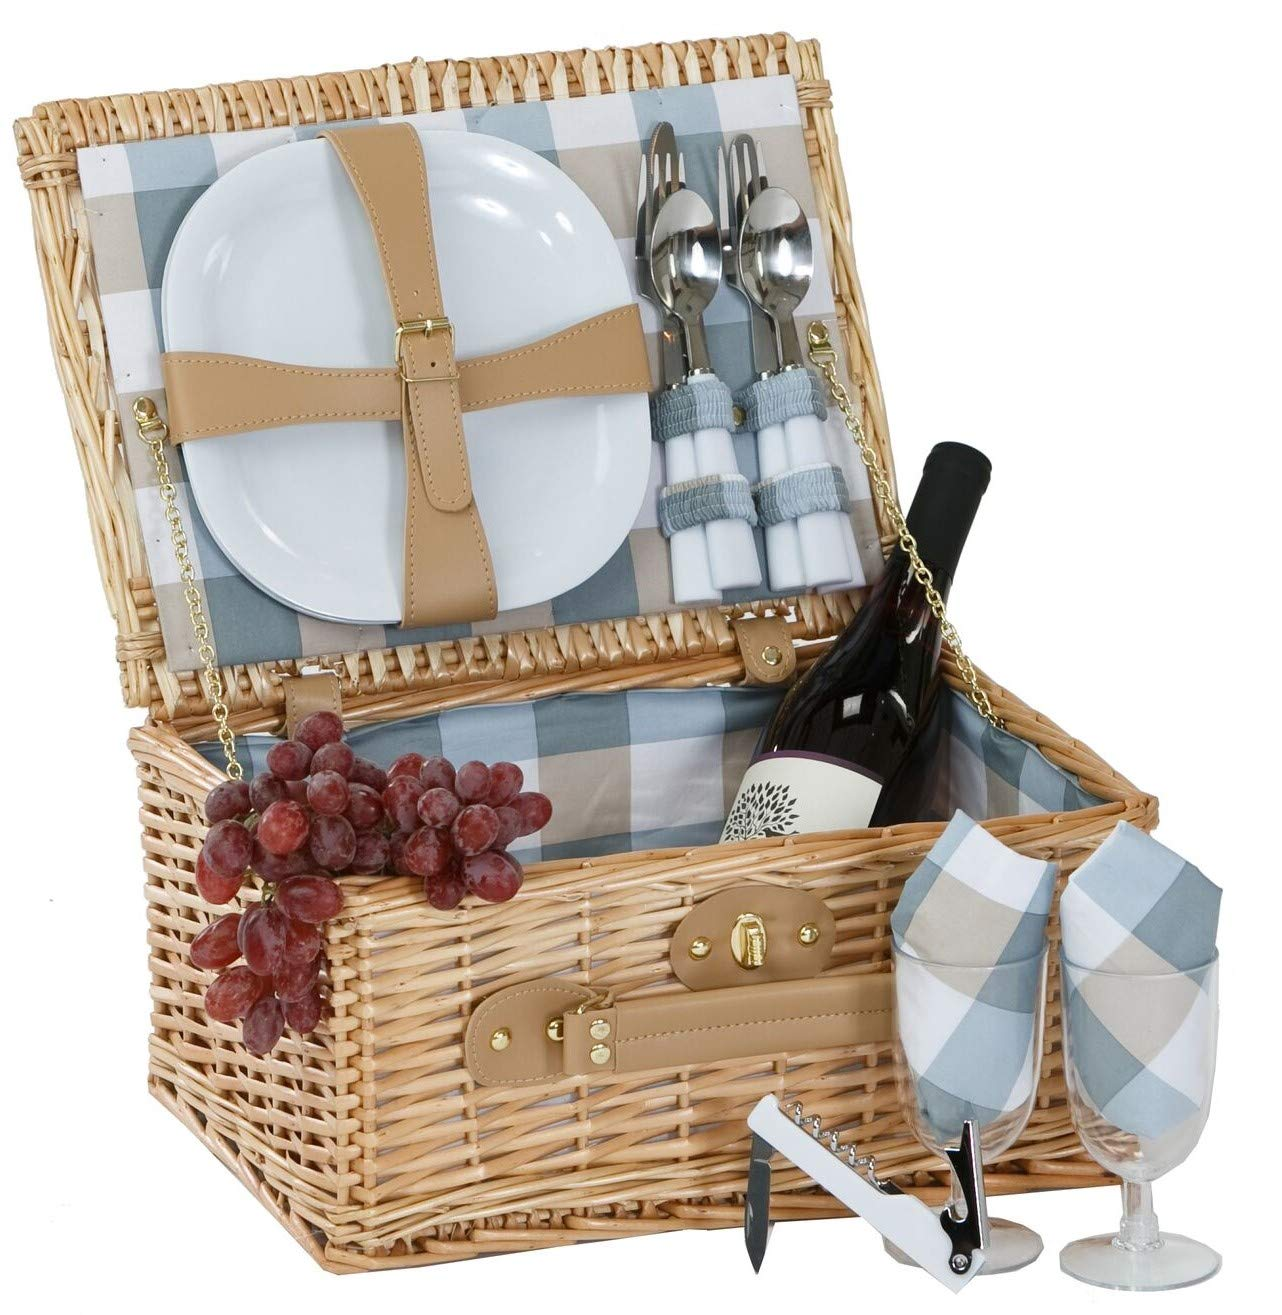 Picnic Plus Boothbay Two Person Picnic Basket Willow Picnic Basket With Two Plates/Flatware/Wine Glasses/Cotton Napkins/Corkscrew (14 Pcs Included)